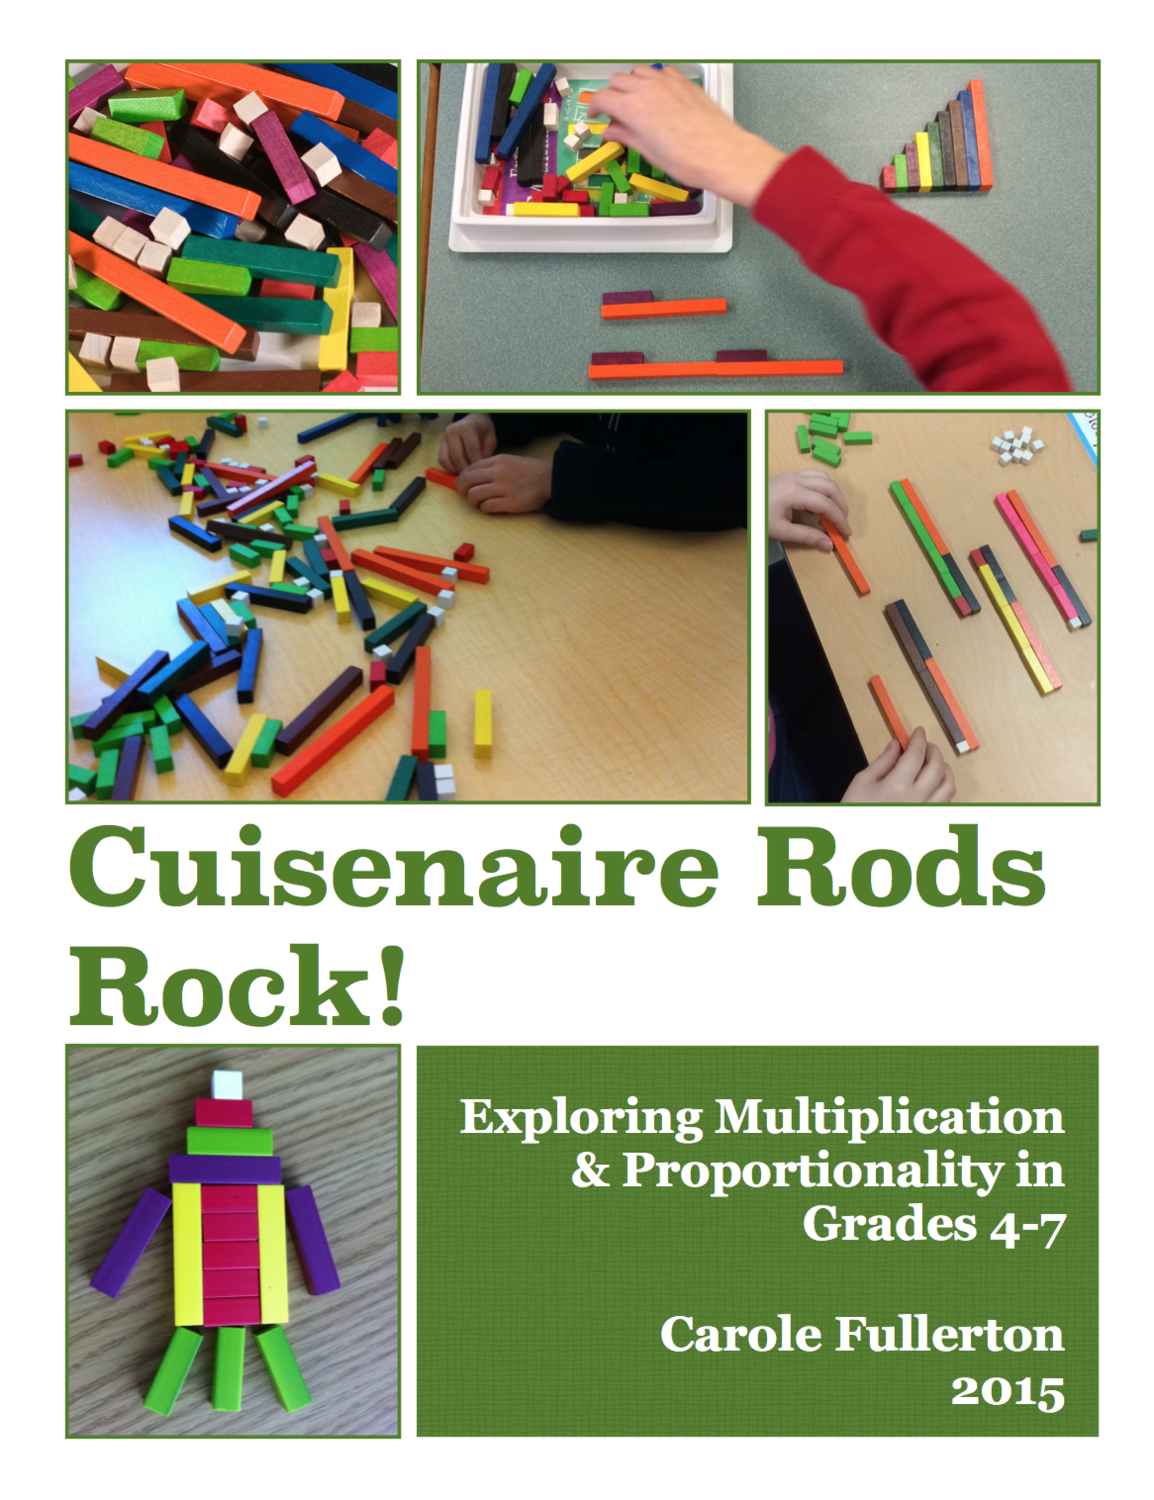 Cuisenaire Rods Rock for Grades 4-7